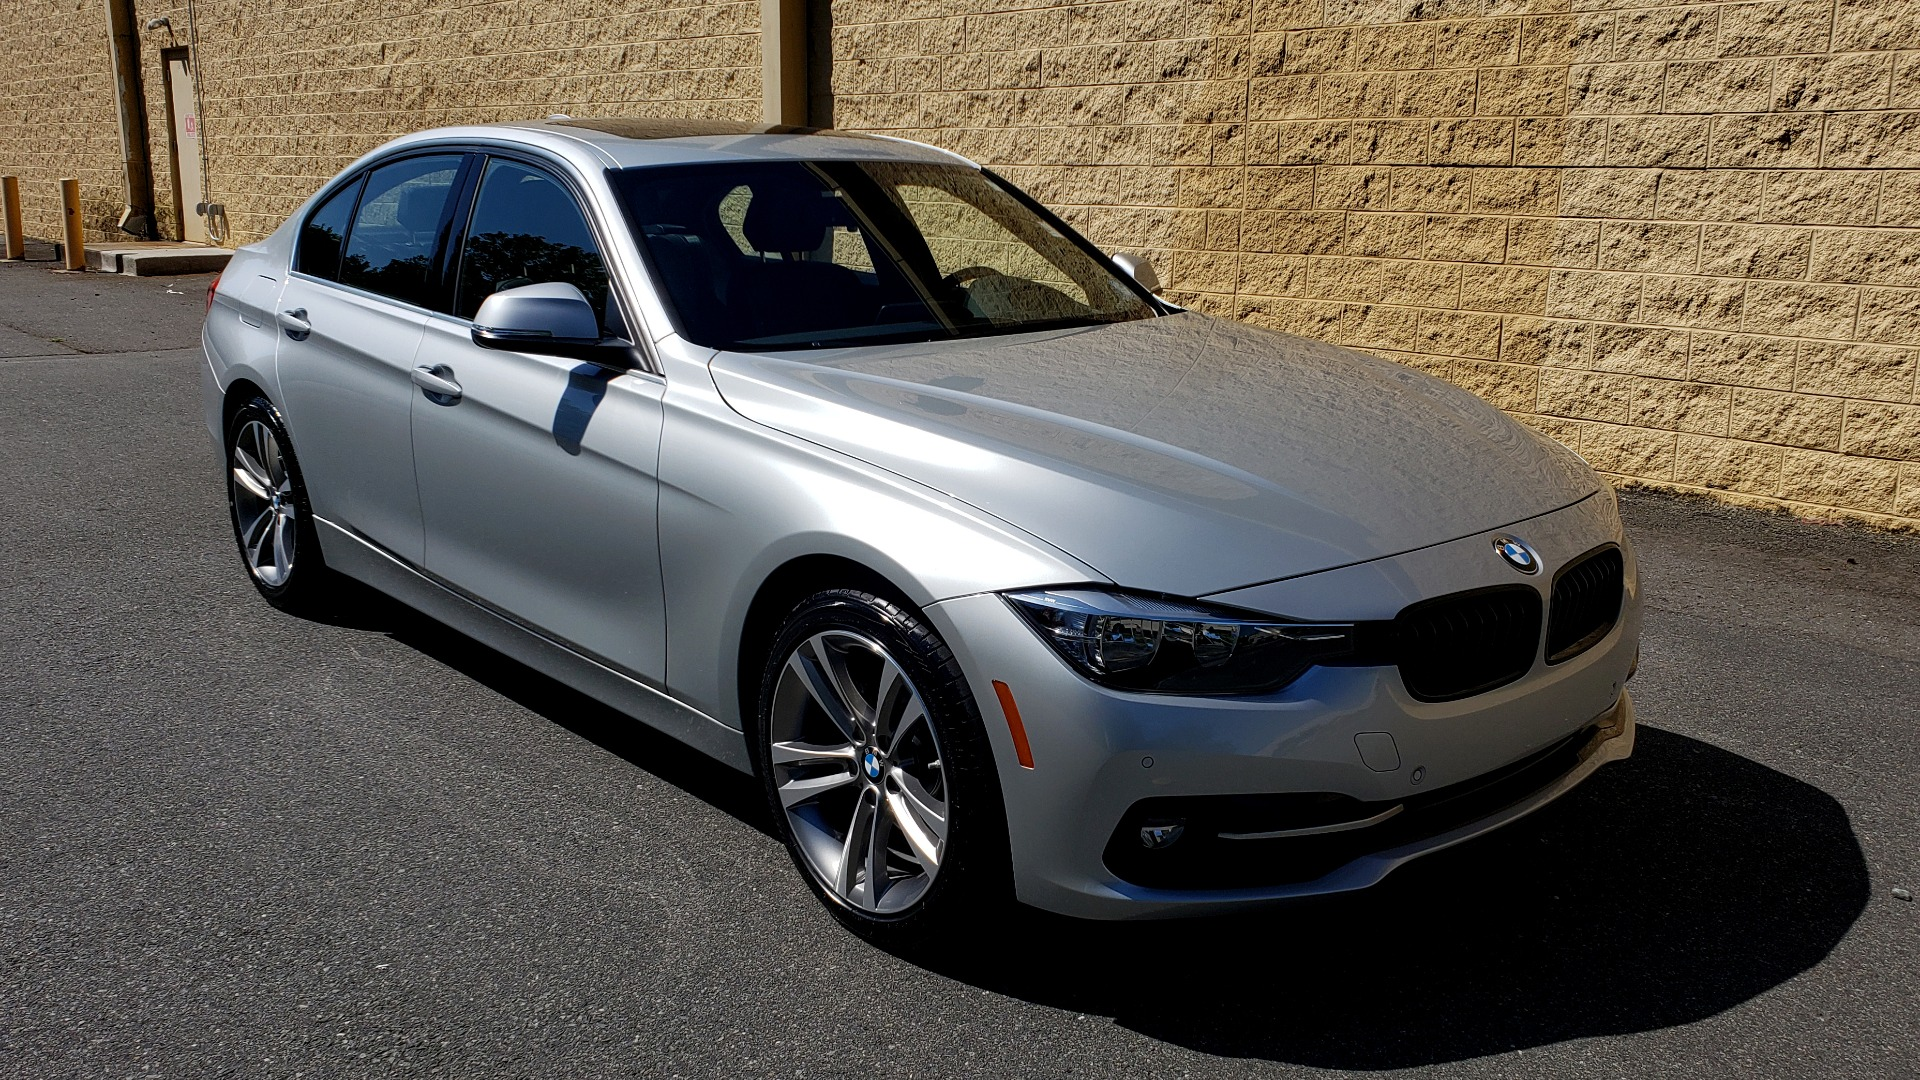 Used 2017 BMW 3 SERIES 330I SPORT SEDAN / DRVR ASST PKG / SUNROOF / REARVIEW for sale $22,695 at Formula Imports in Charlotte NC 28227 4